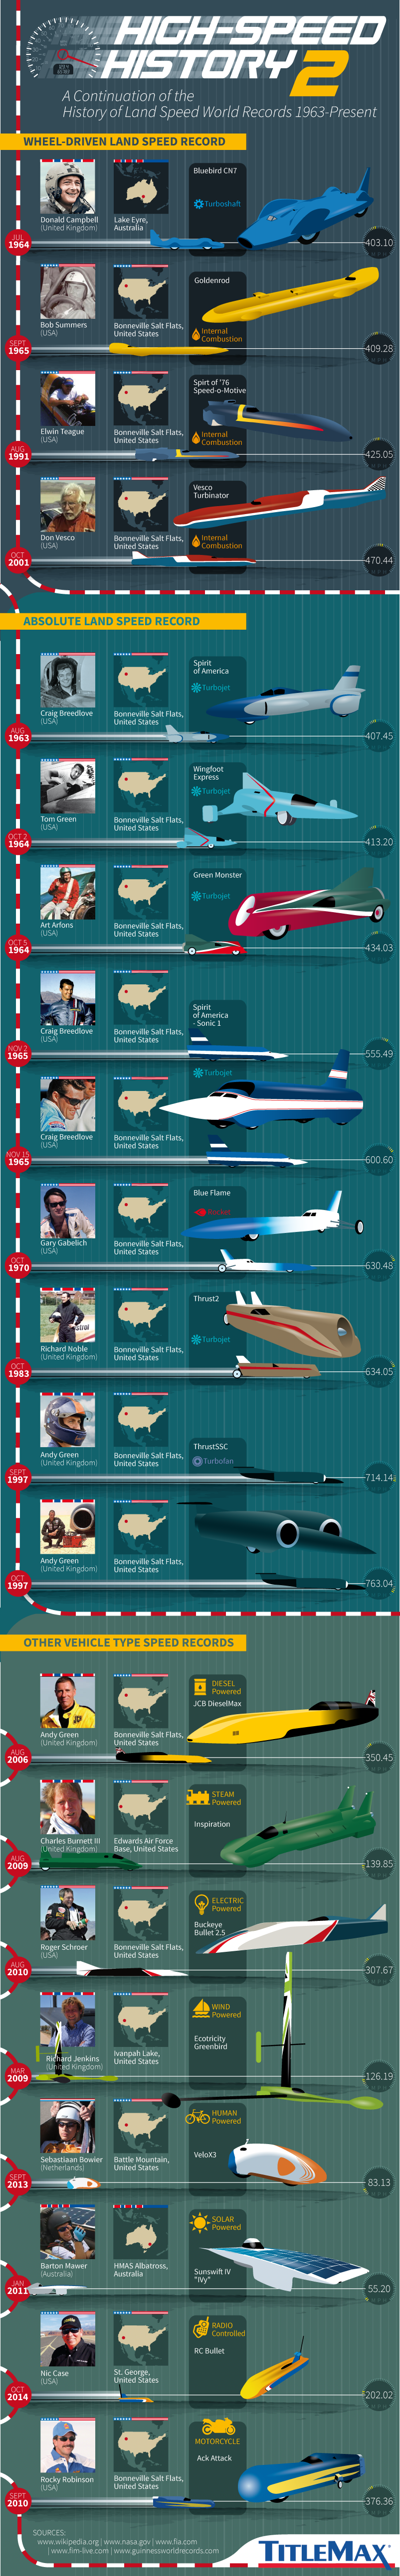 High Speed History Part 2: Landspeed World Records from 1963-Present